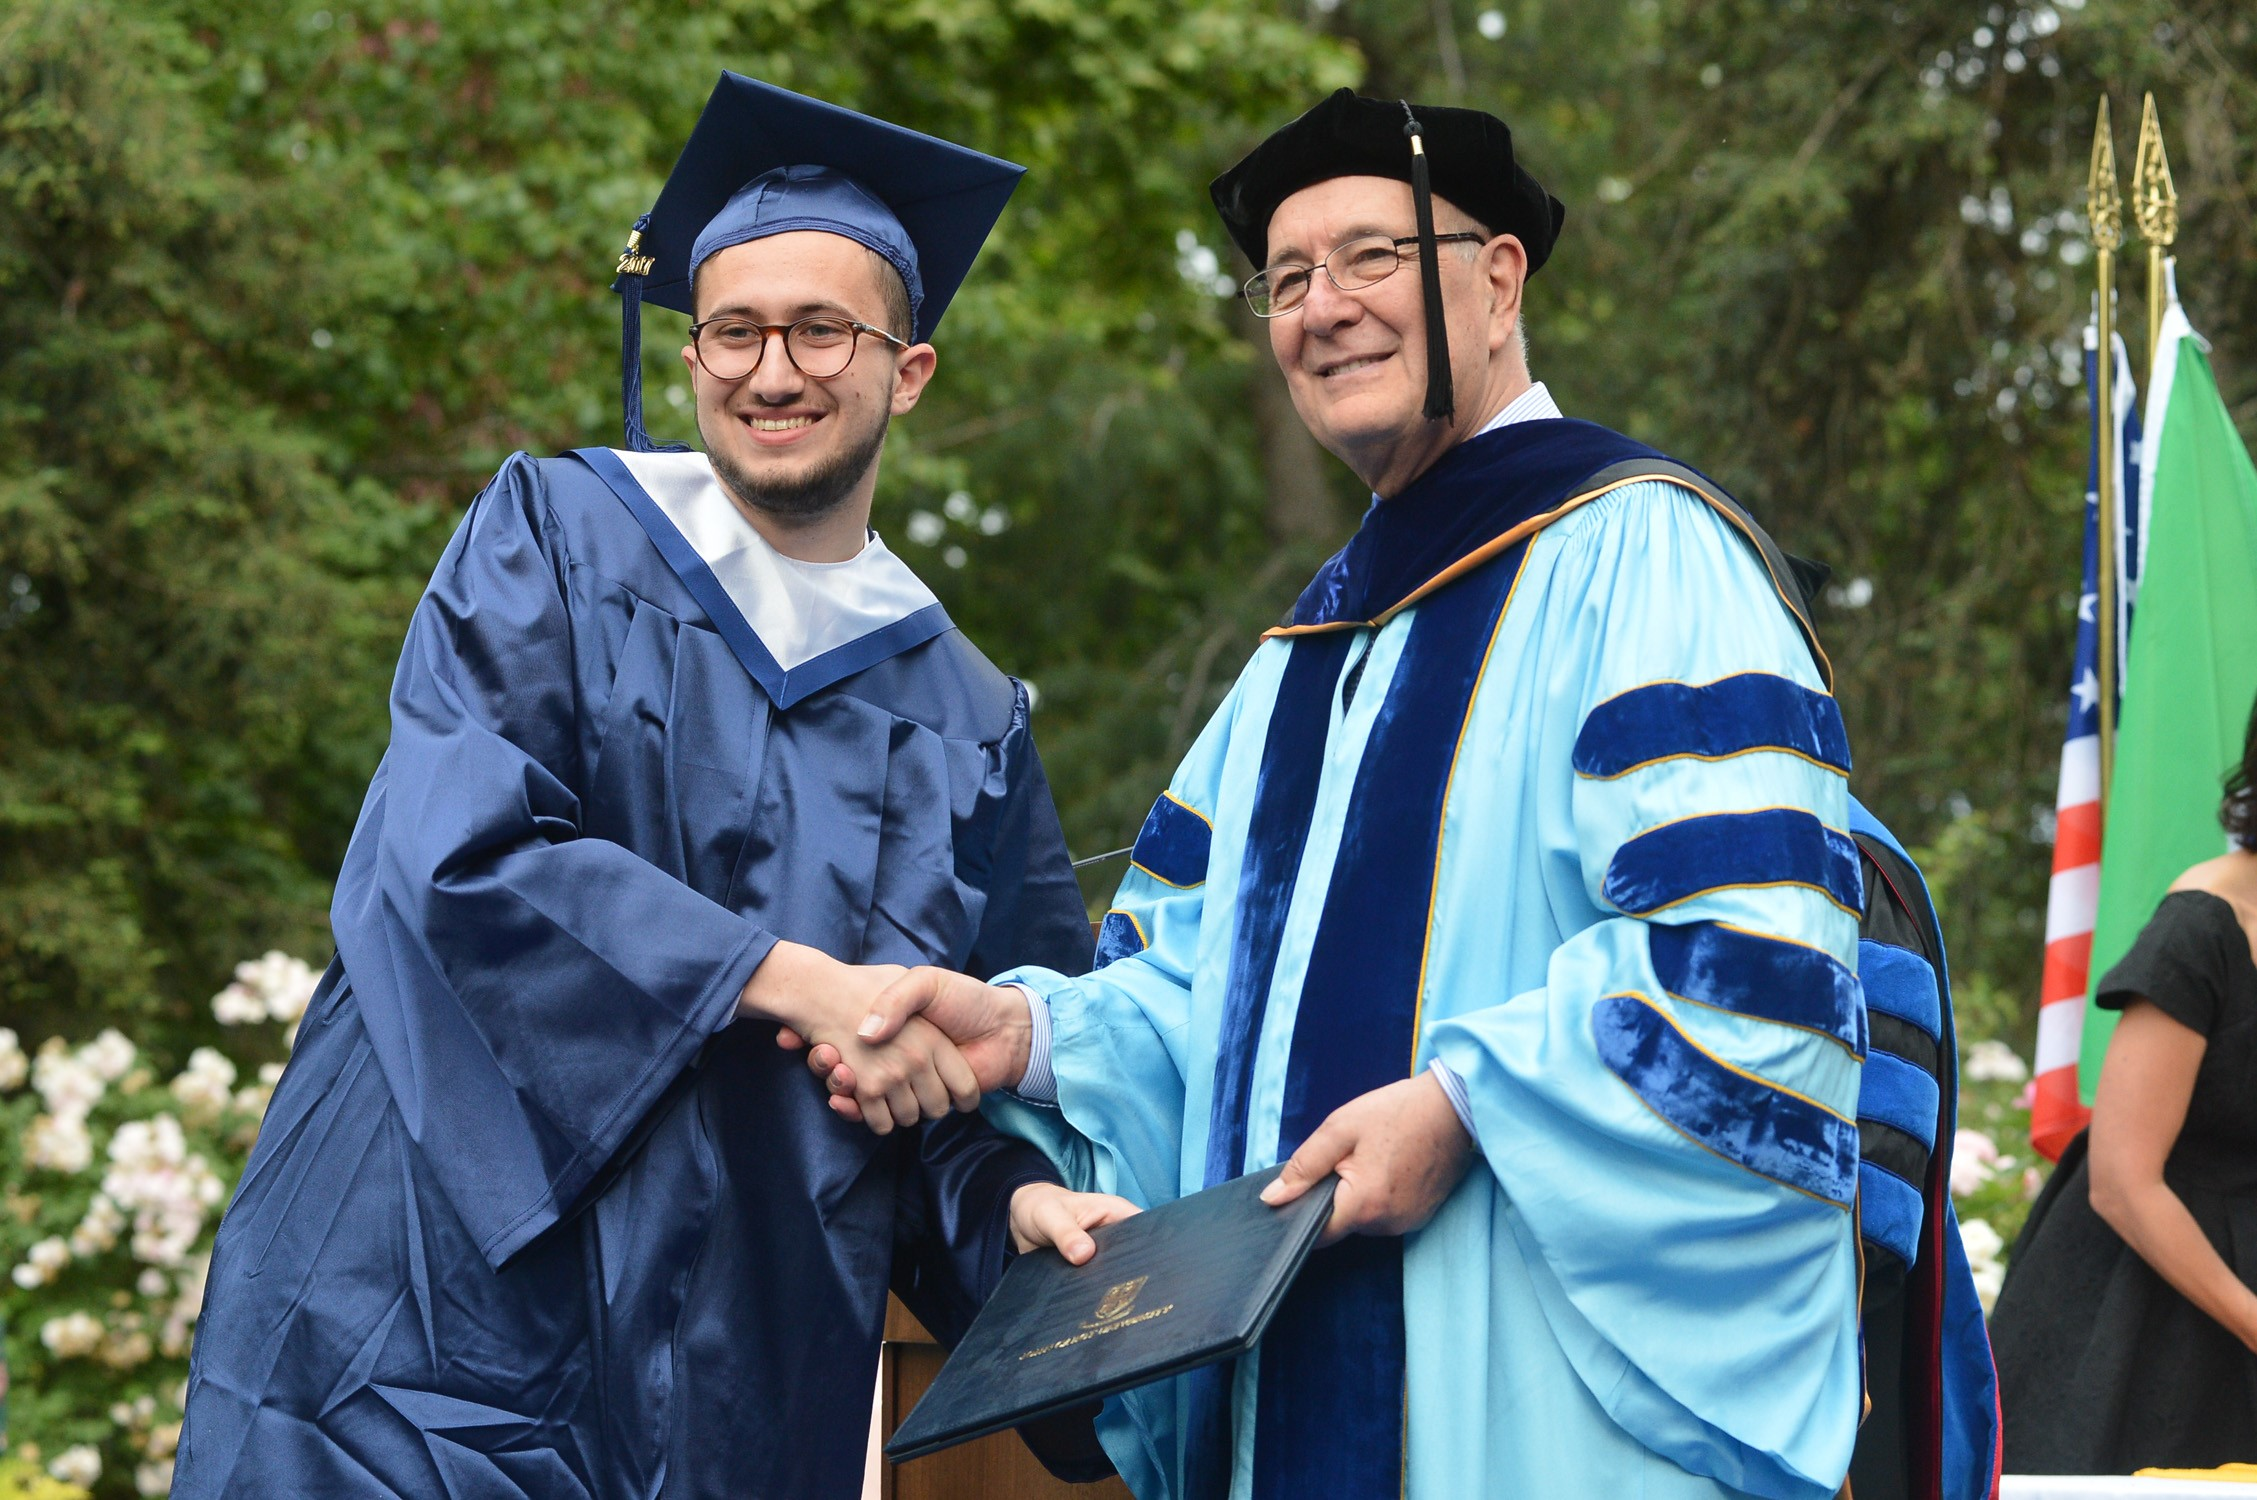 Student and President of the University shaking hands during the graduation ceremony. Both wearing blue caps and gowns